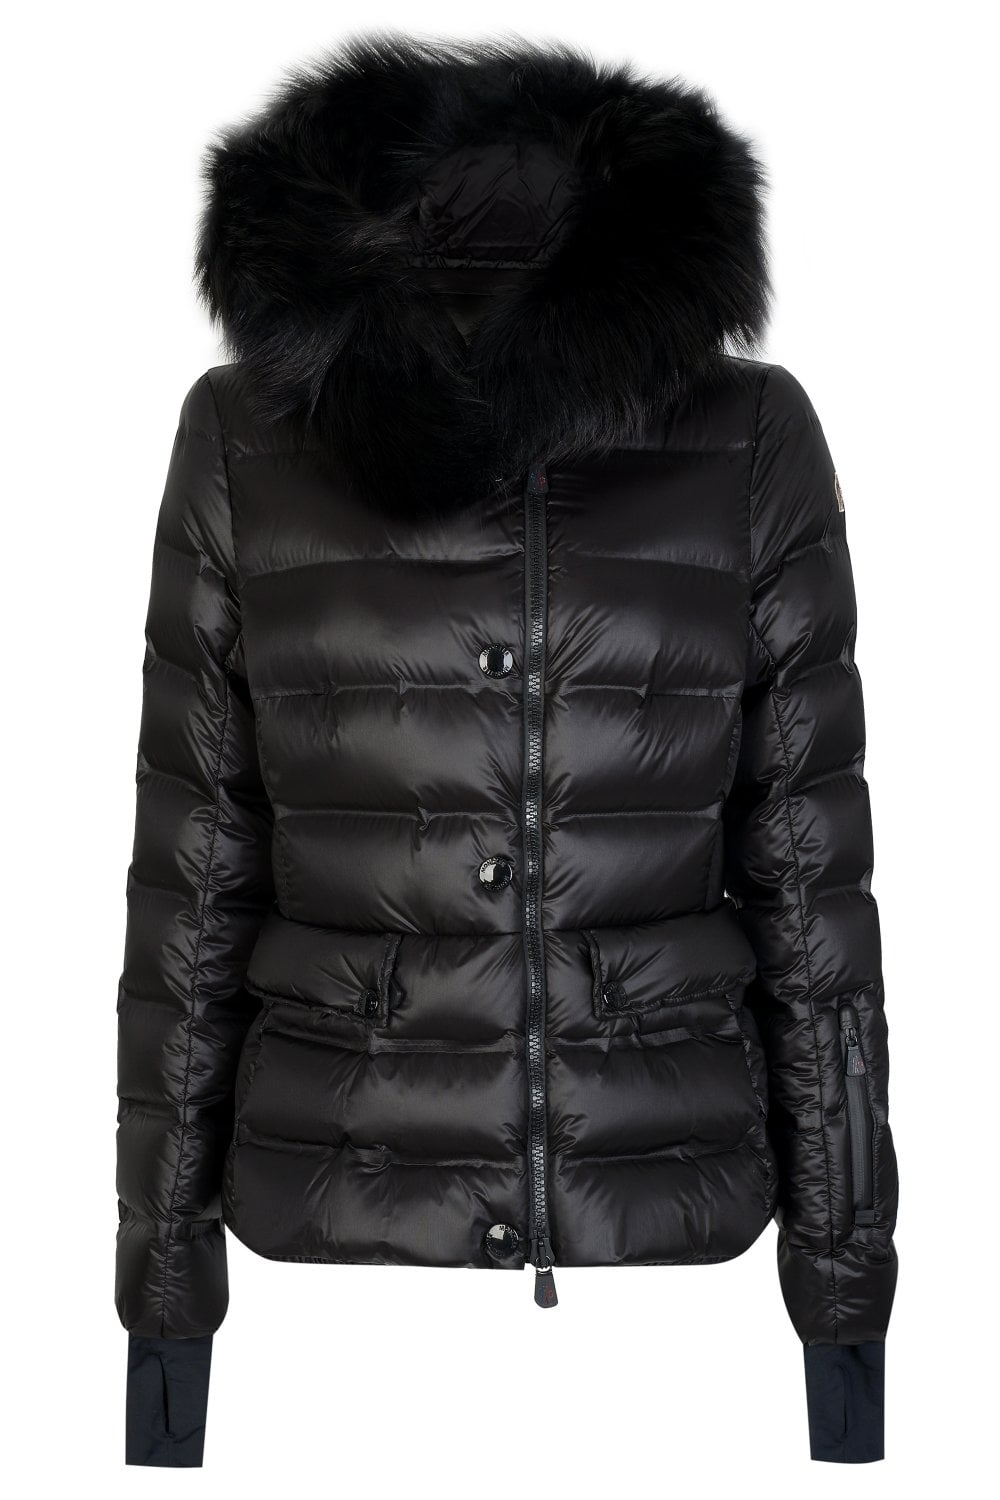 fc7820c2205d MONCLER Moncler Women s Armotech Quilted Jacket - Clothing from ...